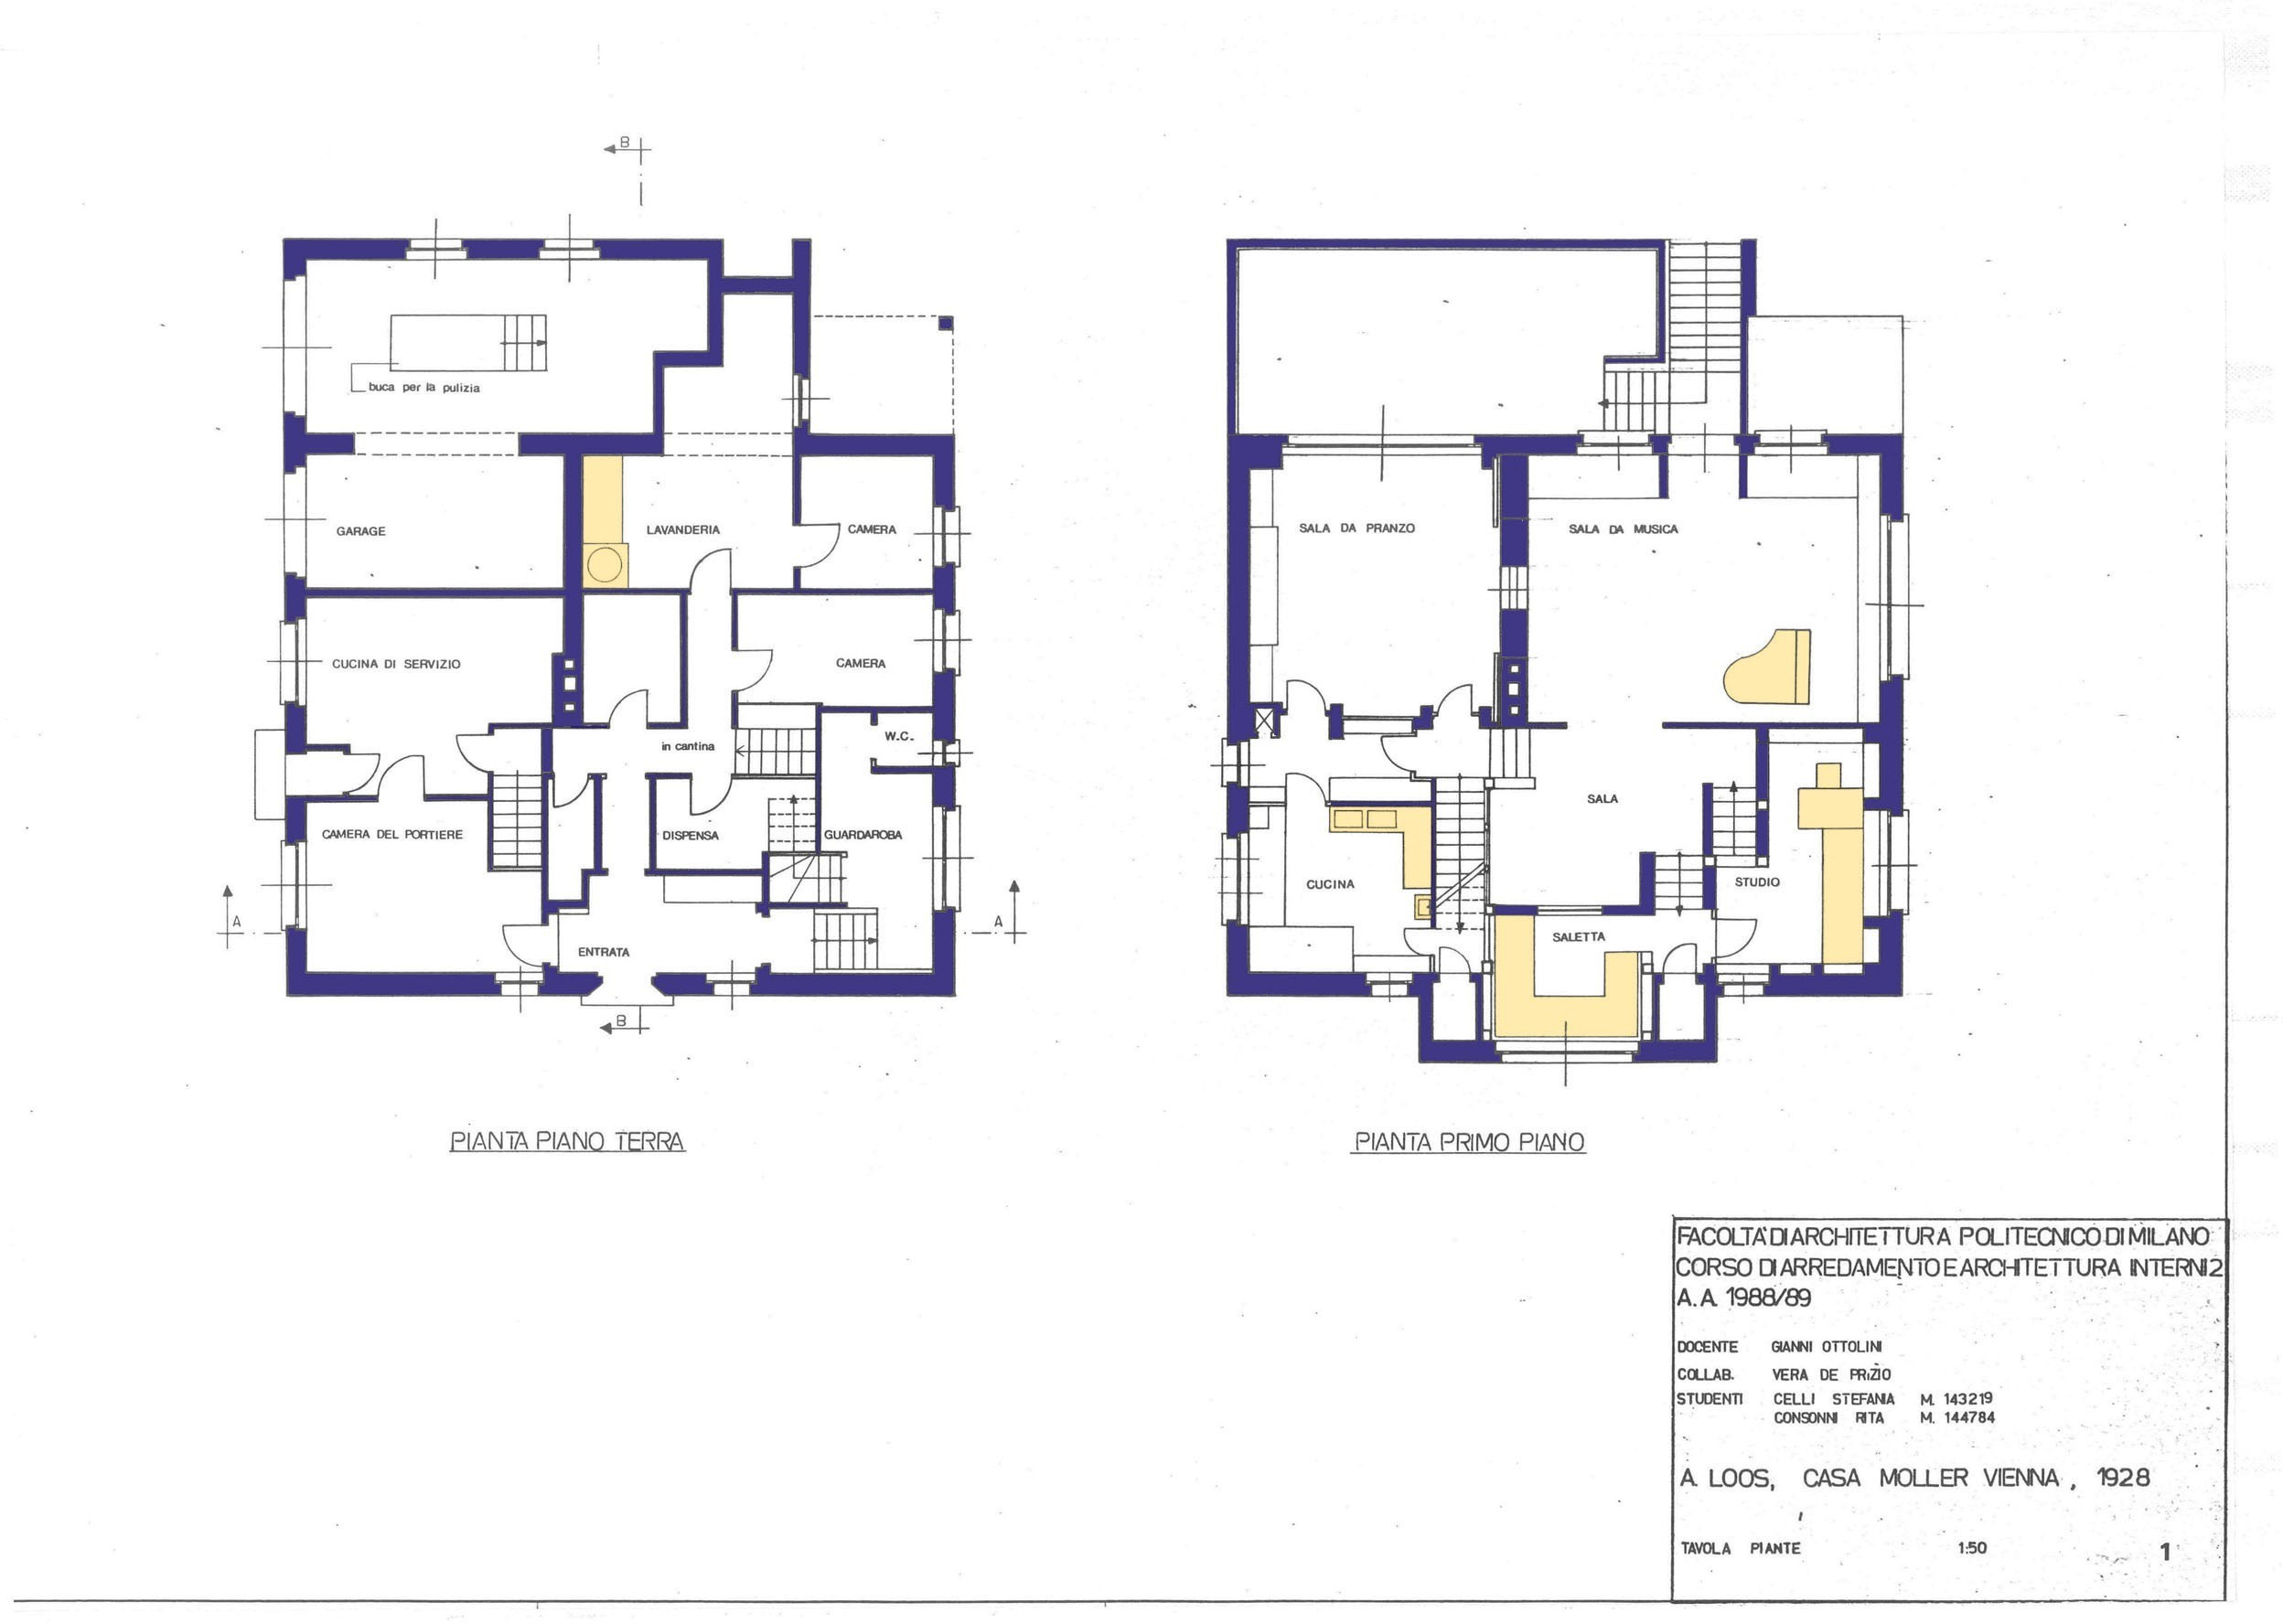 33 Modern 5 Bedroom Floor Plan Photograph Floor Plan Design within 14 Some of the Coolest Ways How to Make Modern 5 Bedroom House Plans